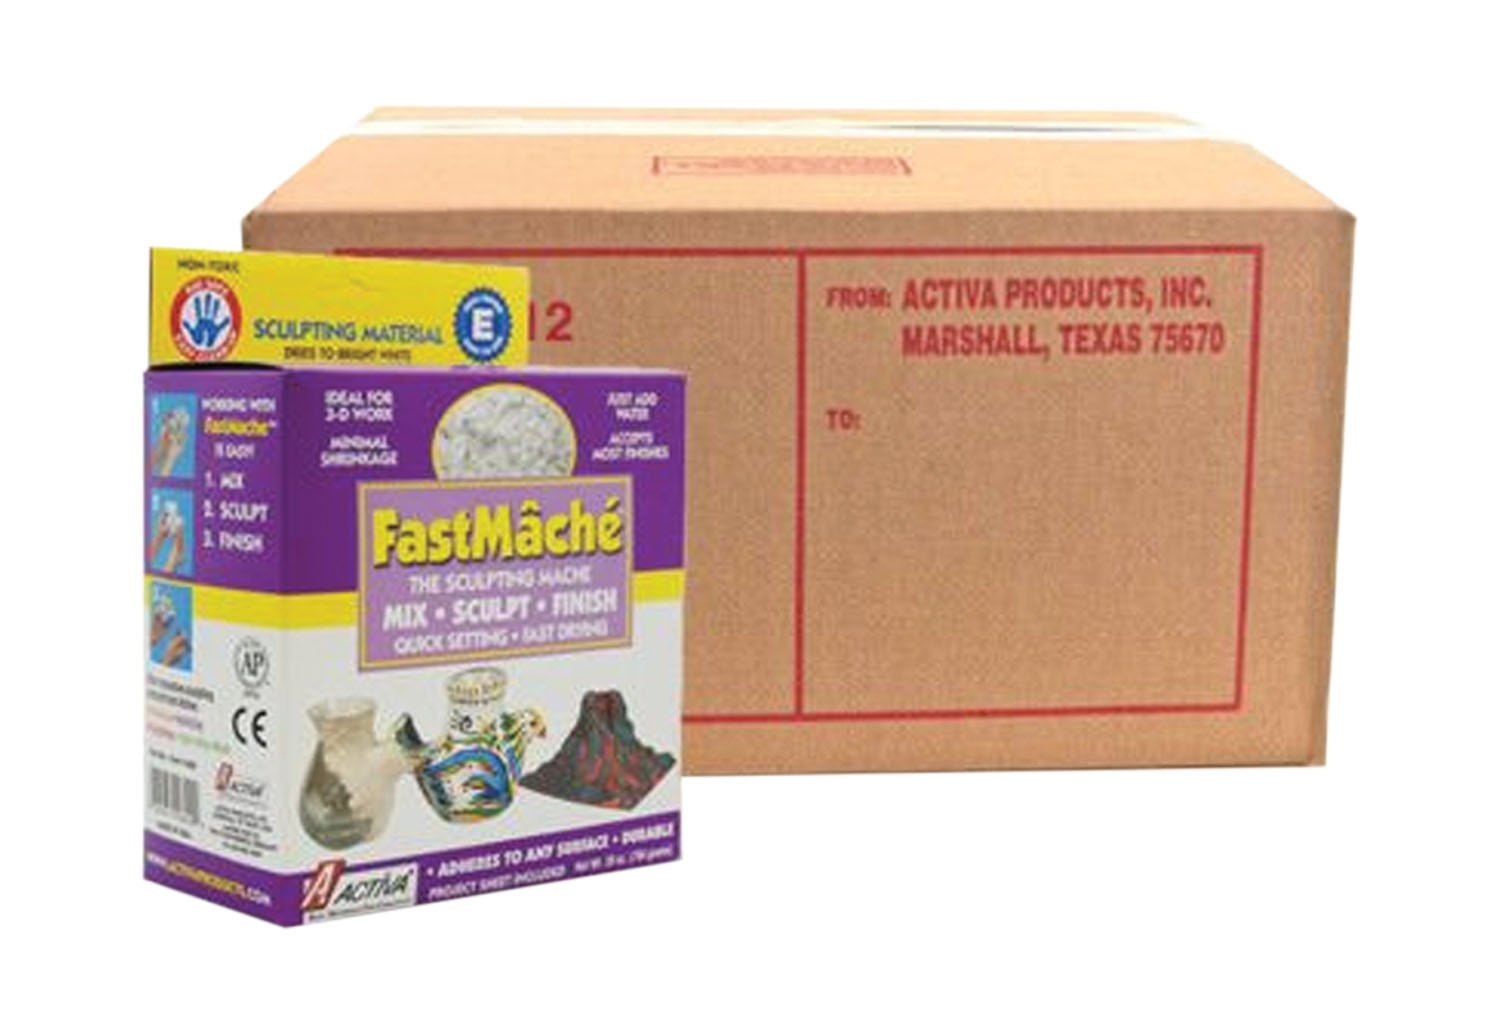 Activa 612 Activa Fast Mache The Sculpting Mache Bright White 12 Lb - Bulk Box